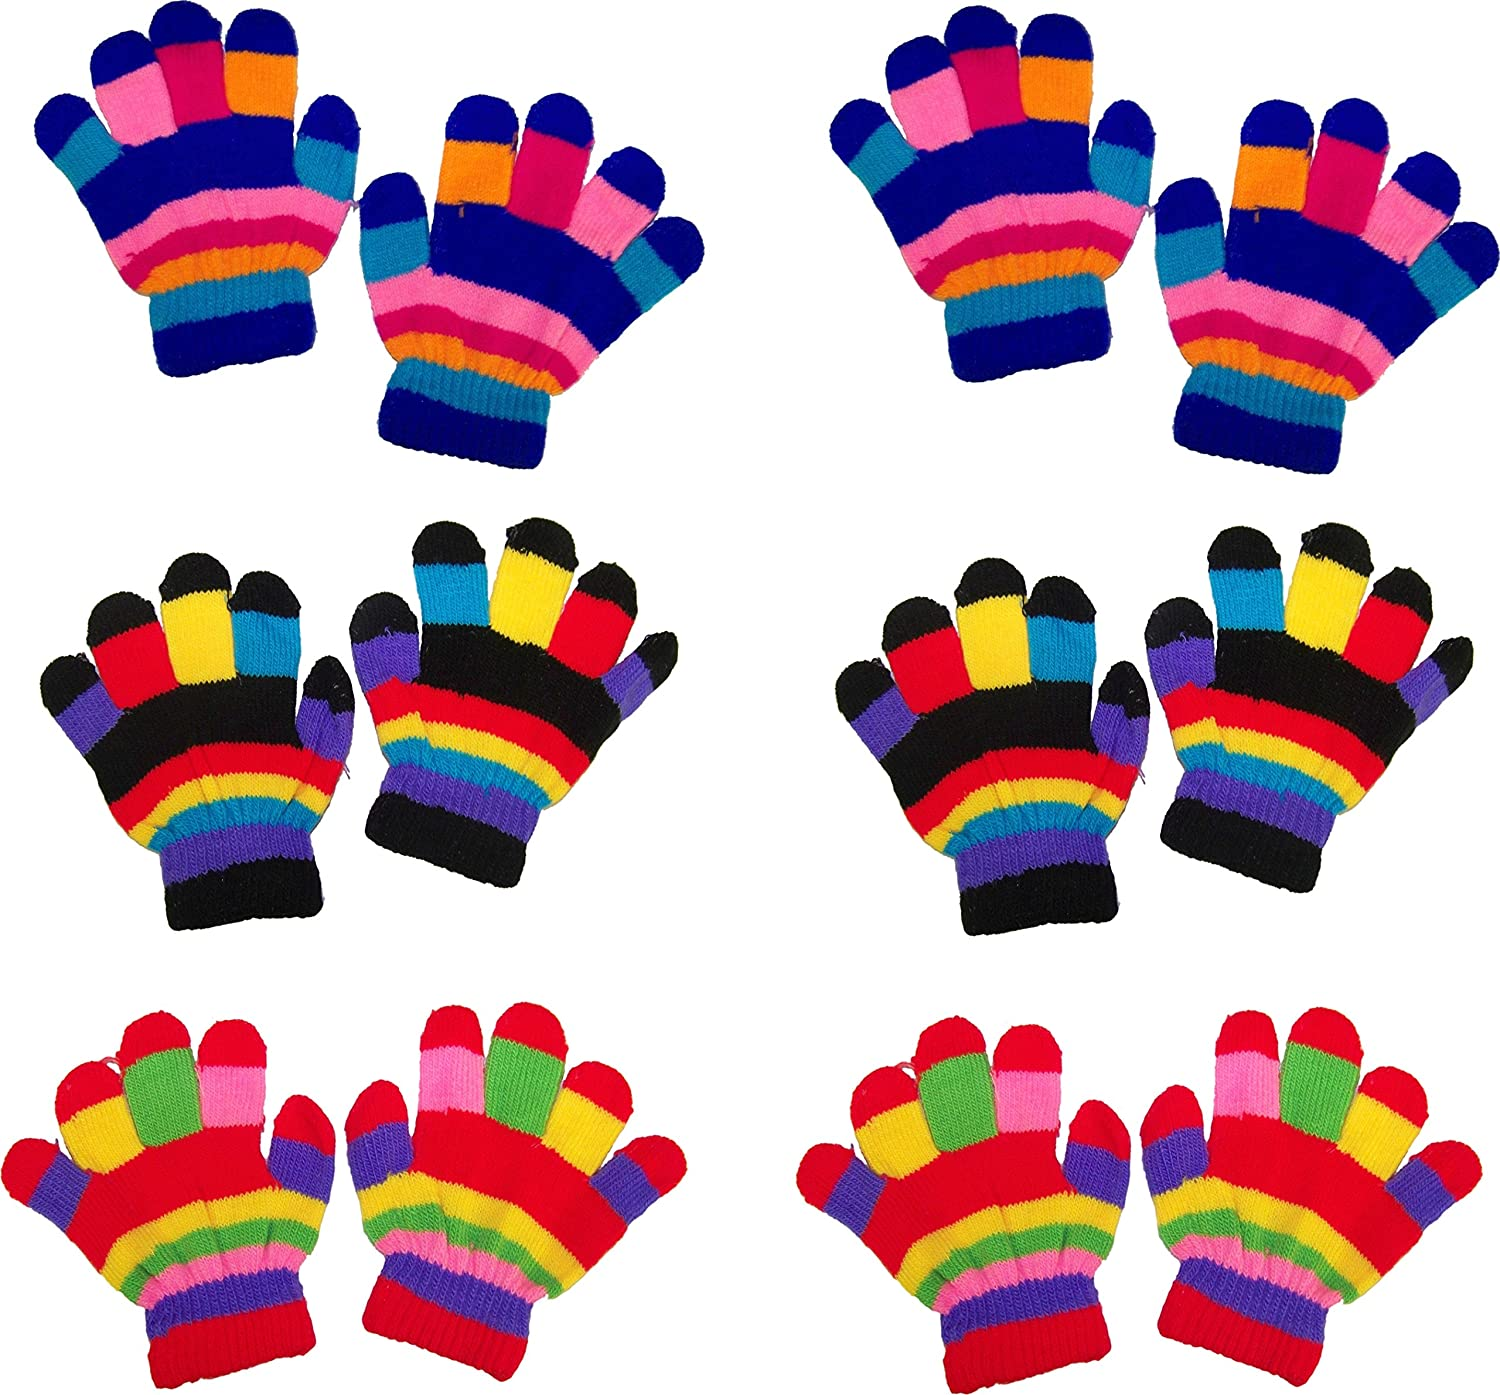 ZUZIFY Toddlers Fun Striped Magic Knit Gloves - 6 Pairs. JA0348 ZUZ-JA0348-OS-BlackRedRoyal